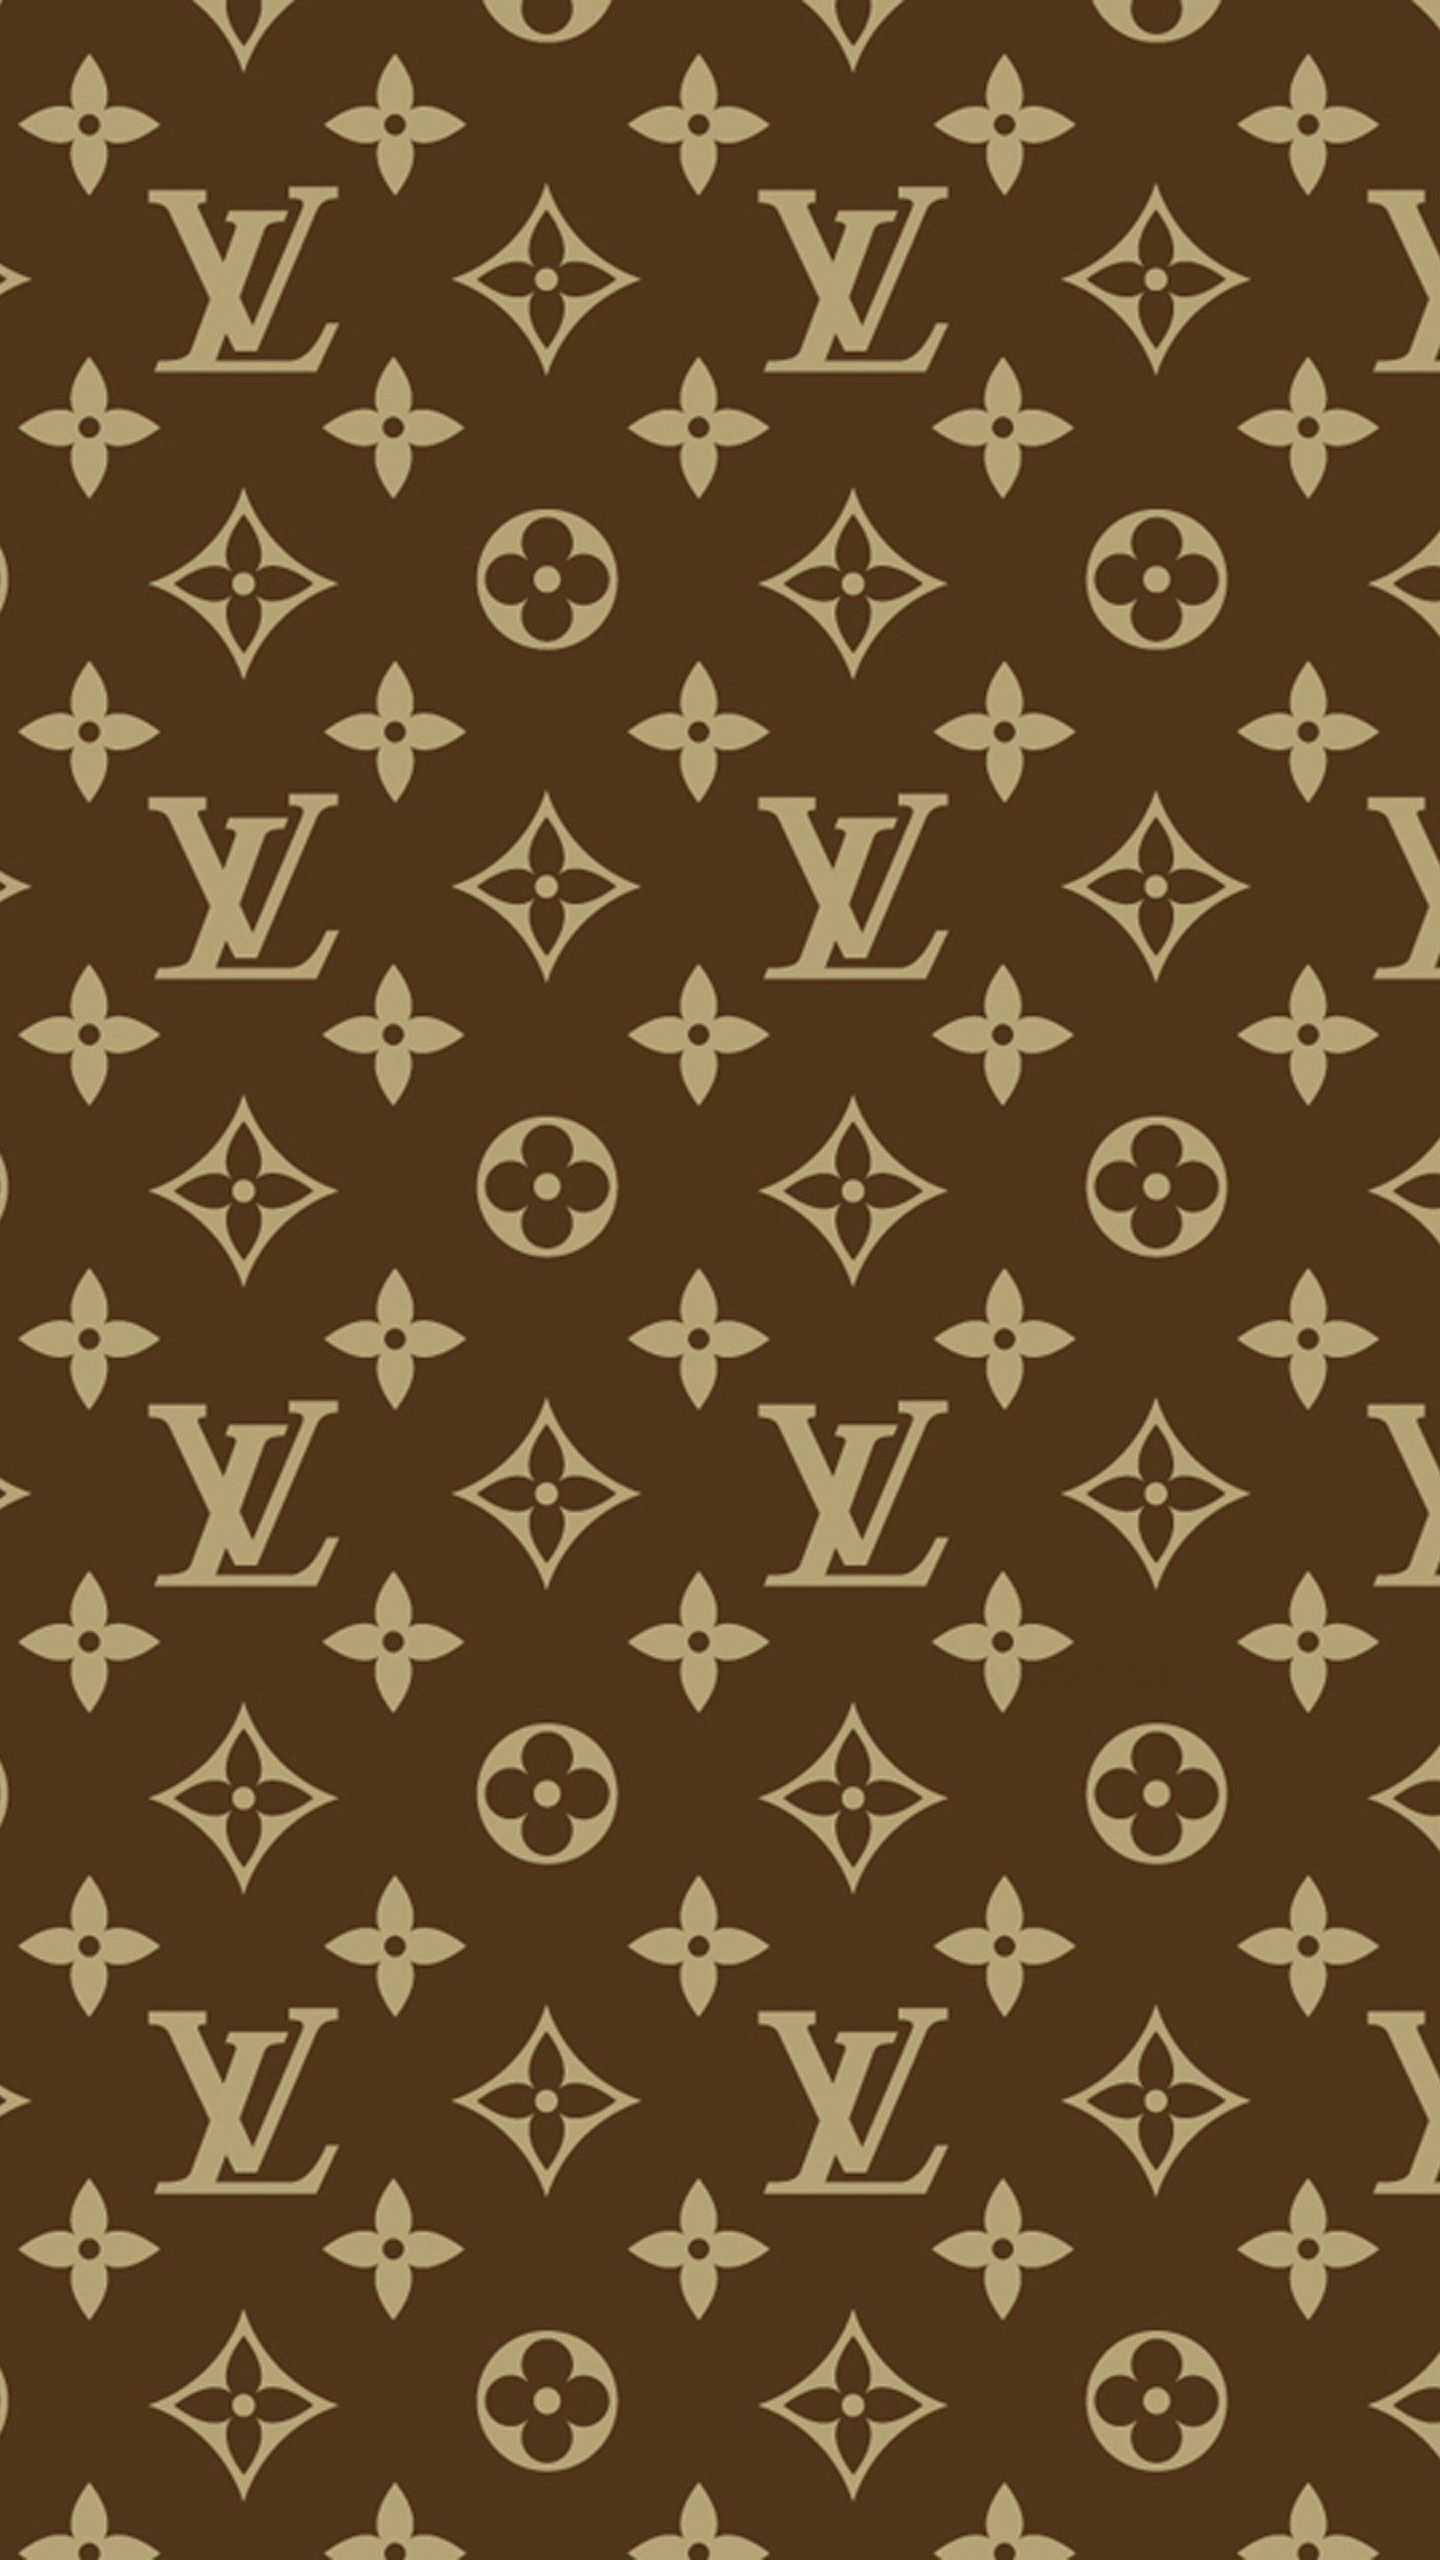 Wallpaper iphone louis vuitton - Louis Vuitton Brown Galaxy Note 4 Wallpapers